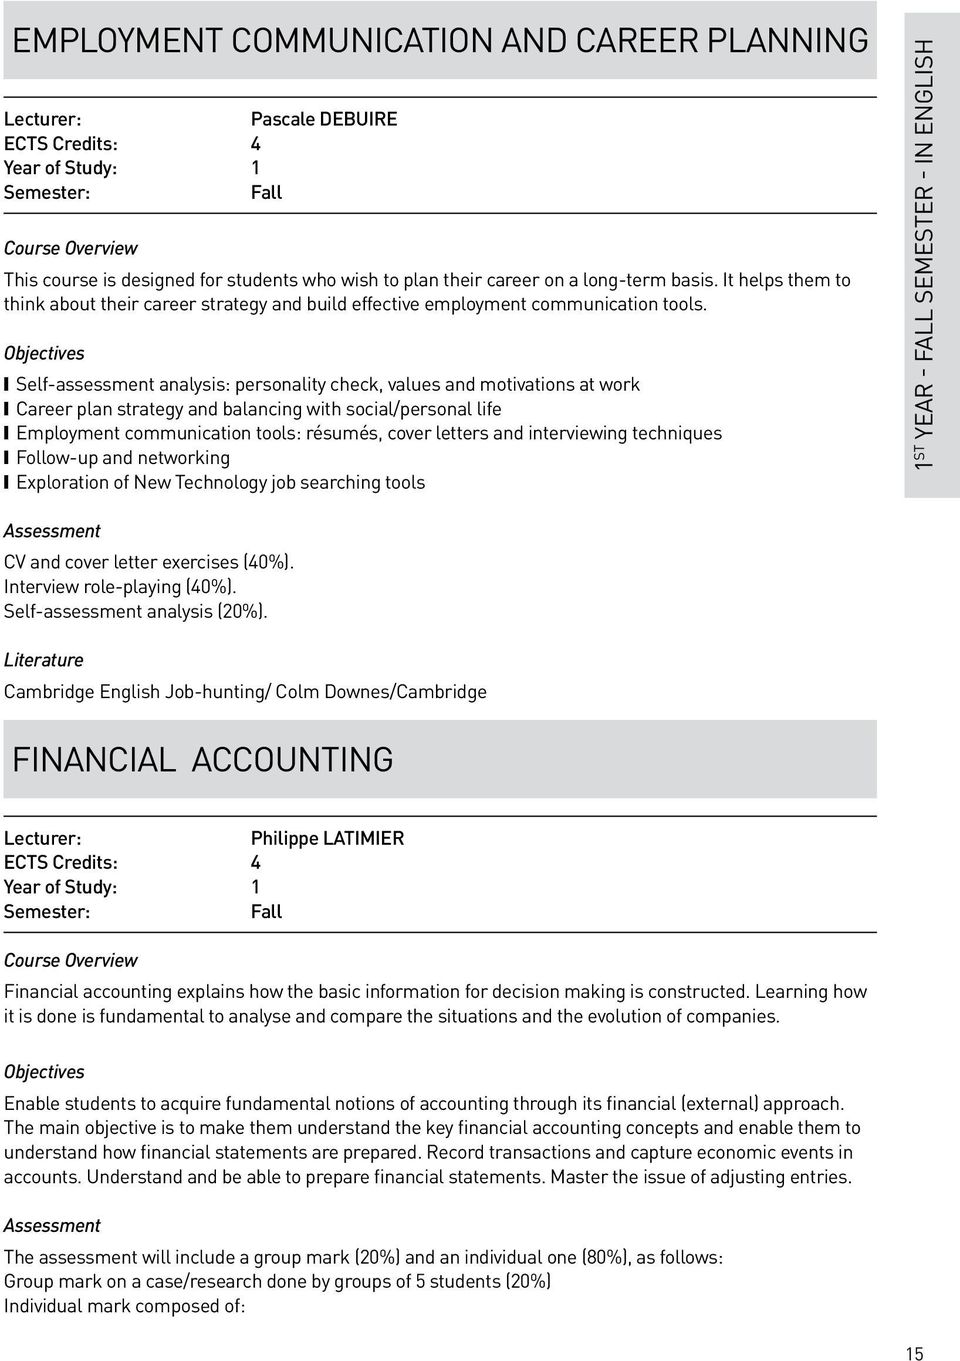 Objectives Self-assessment analysis: personality check, values and motivations at work Career plan strategy and balancing with social/personal life Employment communication tools: résumés, cover